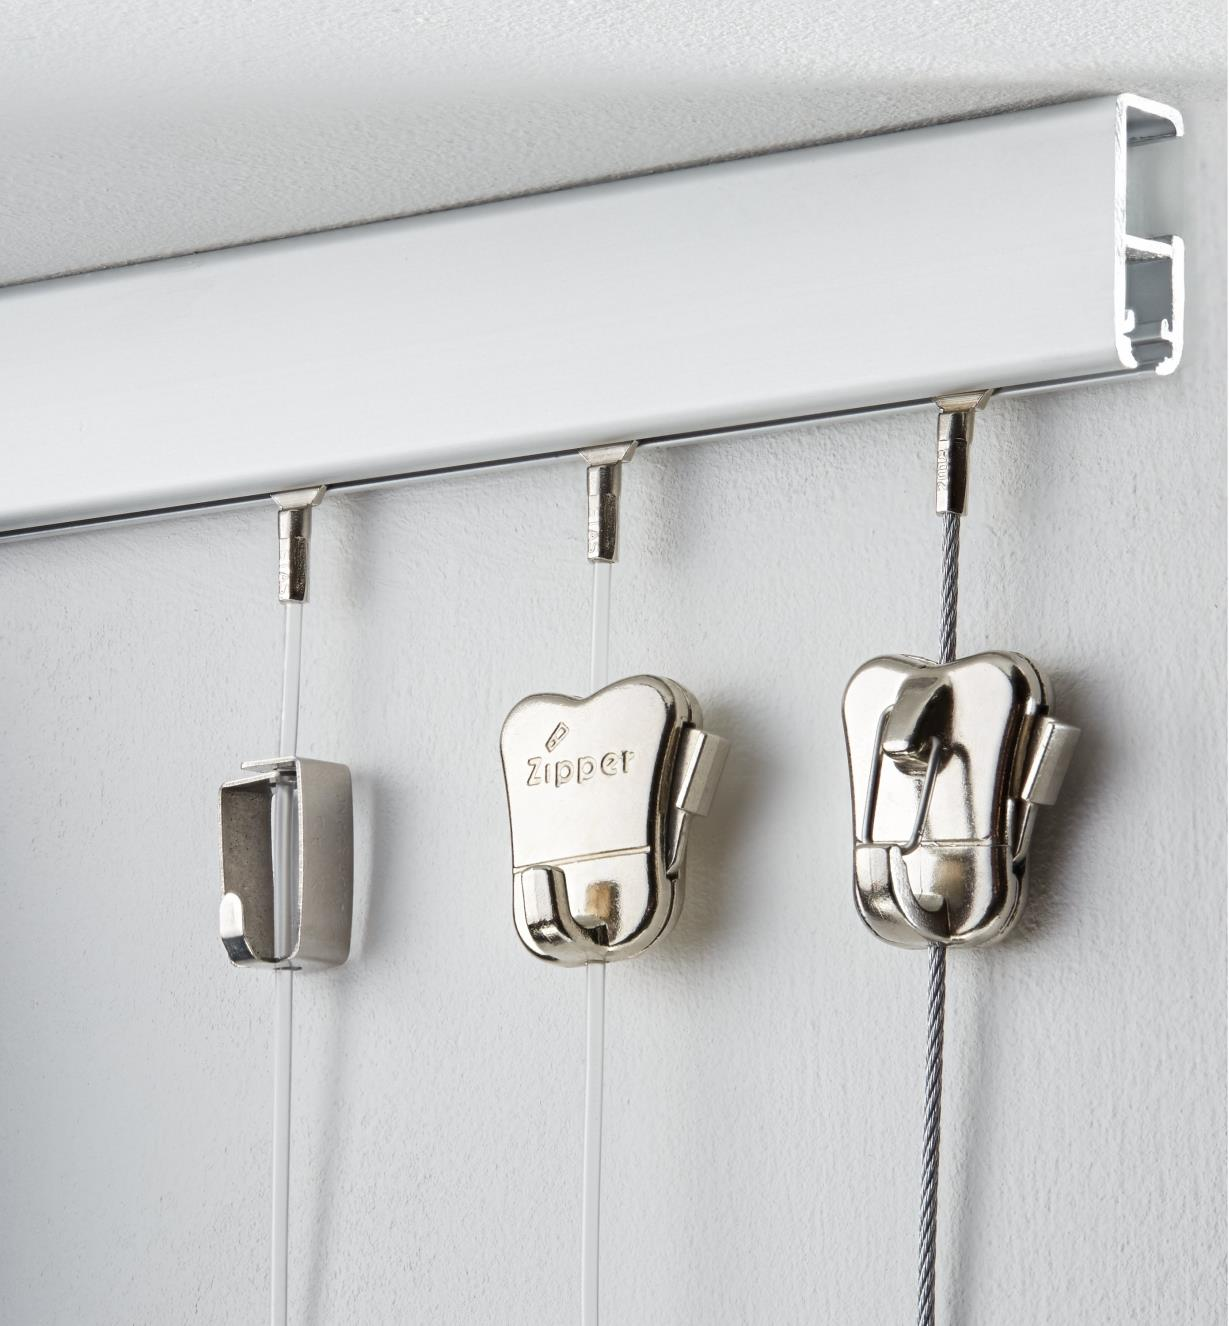 Cliprail Picture-Hanging System